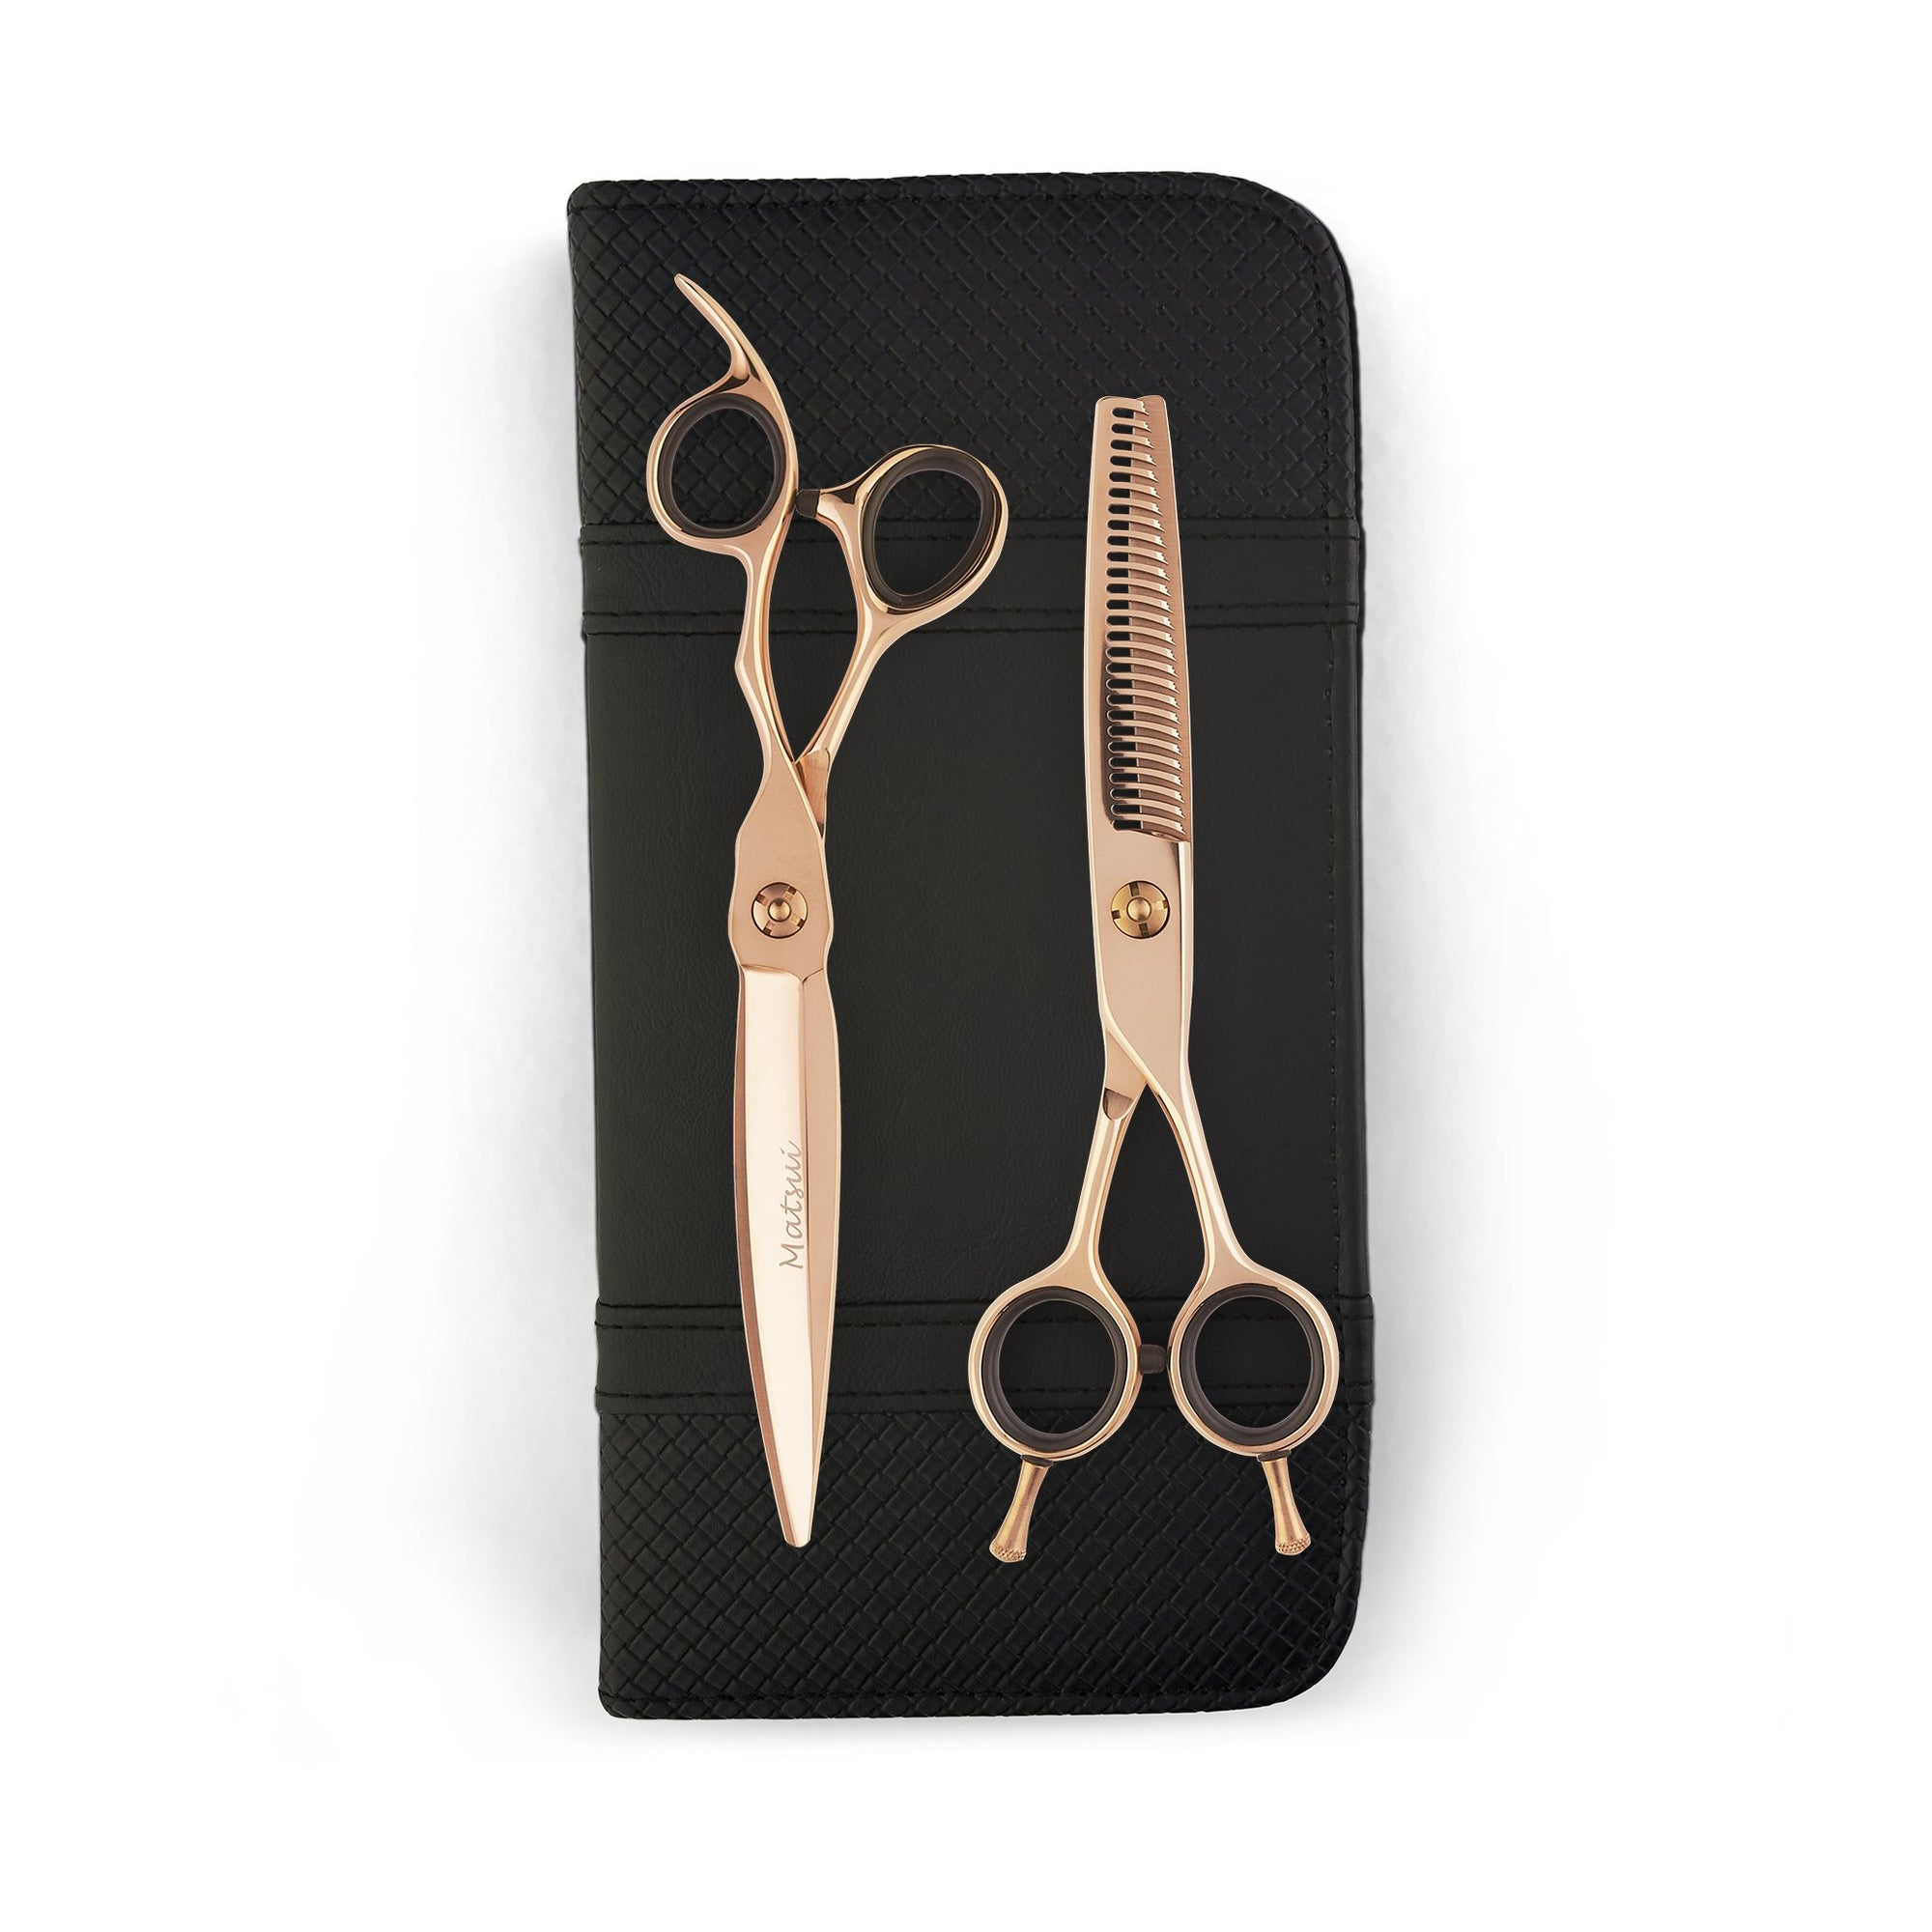 Matsui VG10 Sword Shear Thinner Combo - Rose Gold - Scissor Tech USA